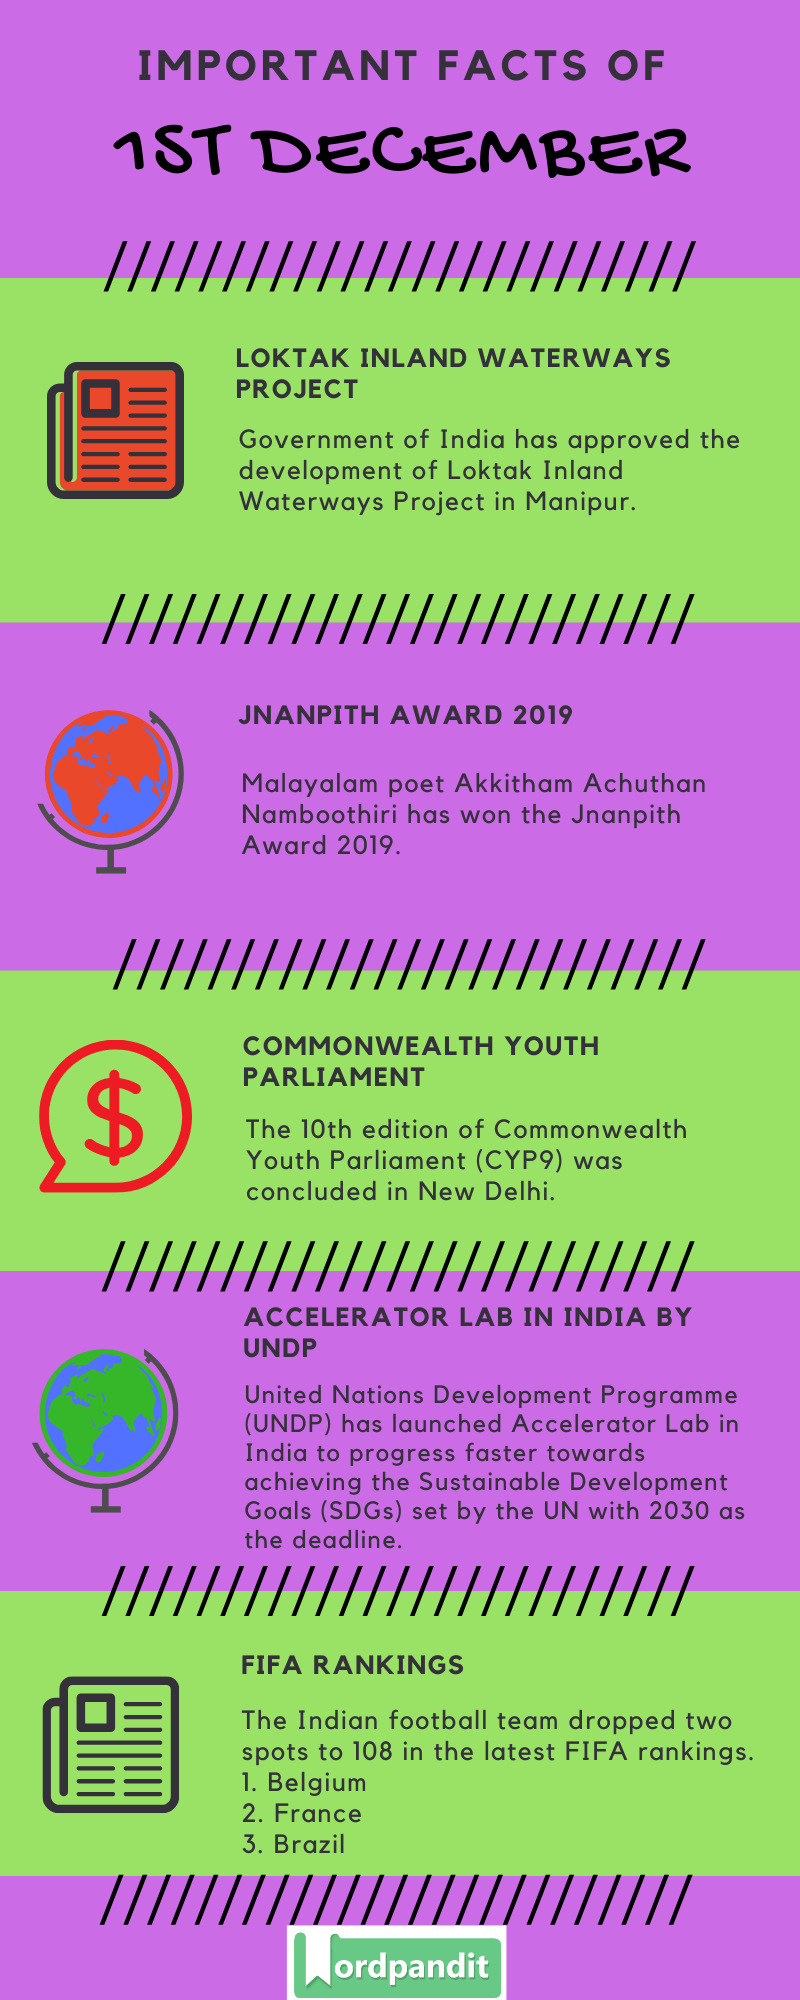 Daily Current Affairs 1 December 2019 Current Affairs Quiz 1 December 2019 Current Affairs Infographic